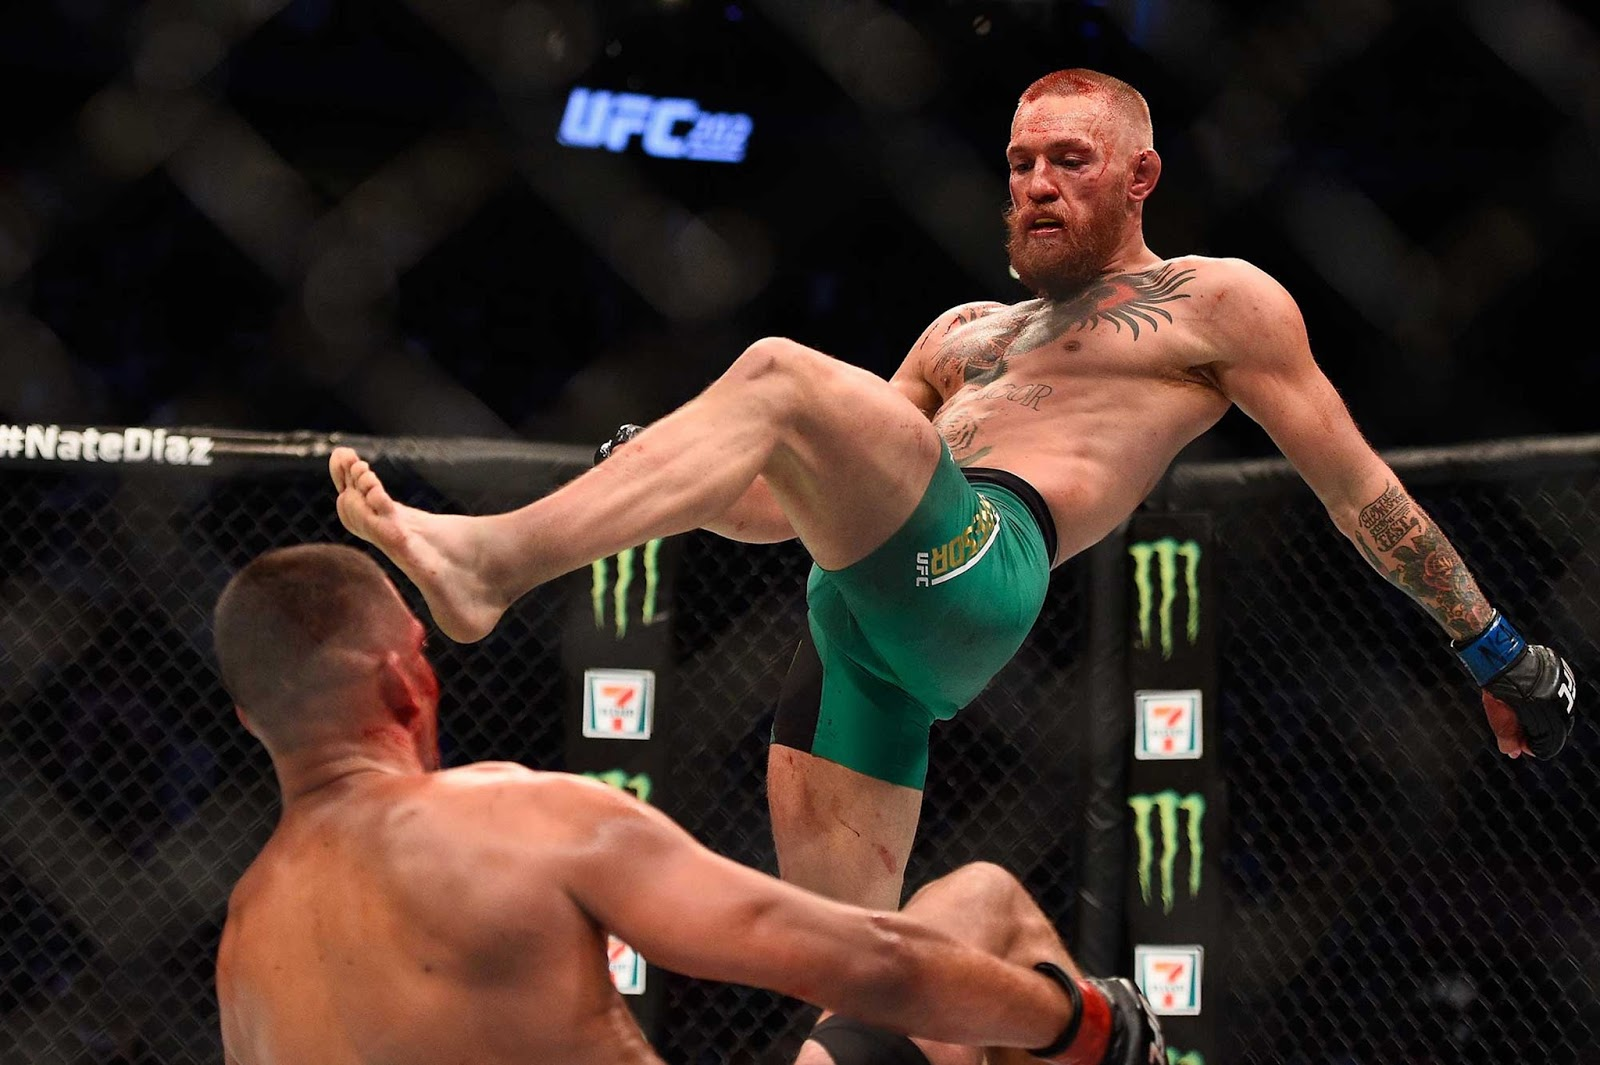 CONOR MCGREGOR VS. NATE DIAZ 10